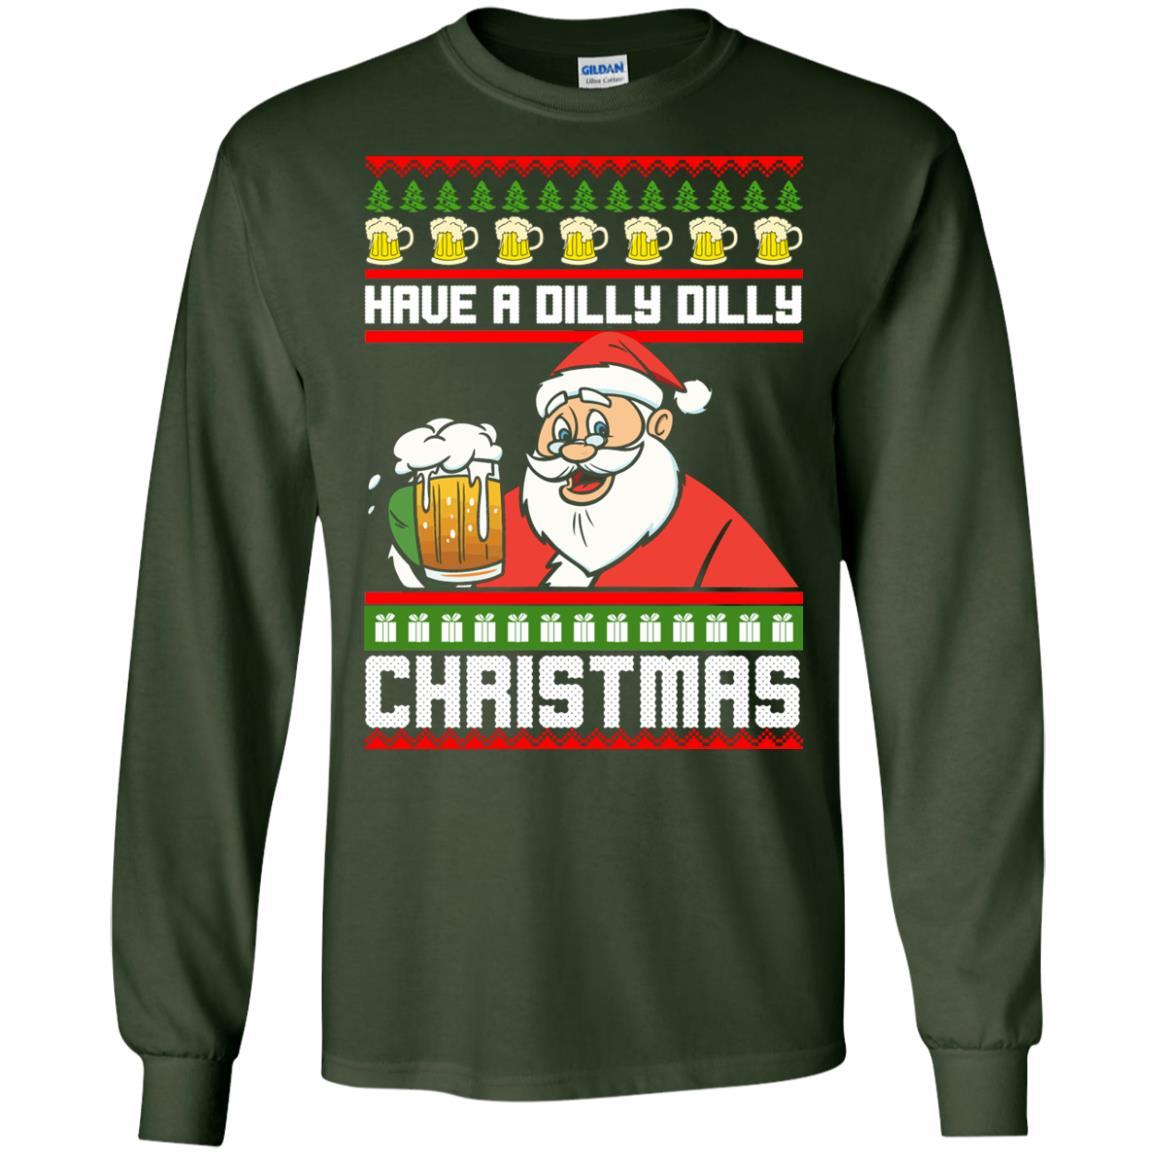 image 6127 - Have a Dilly Dilly Christmas Ugly Sweatshirt, Long Sleeve